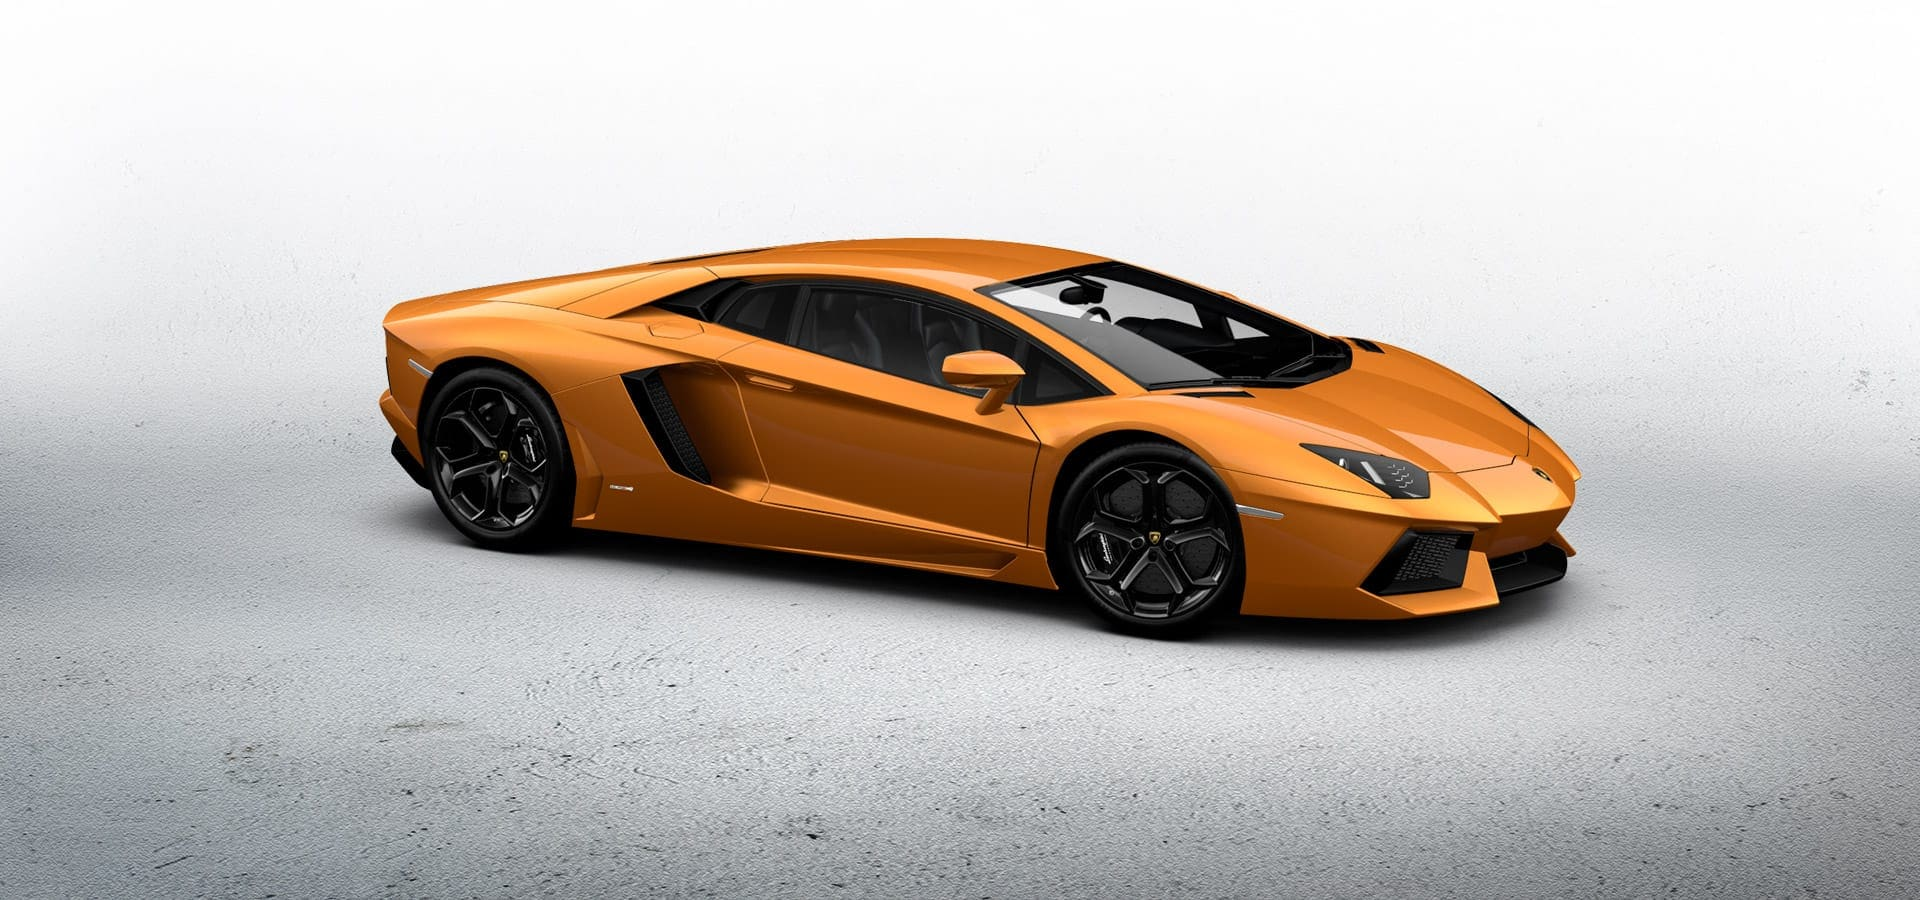 lamborghini aventador coup technical specifications. Black Bedroom Furniture Sets. Home Design Ideas